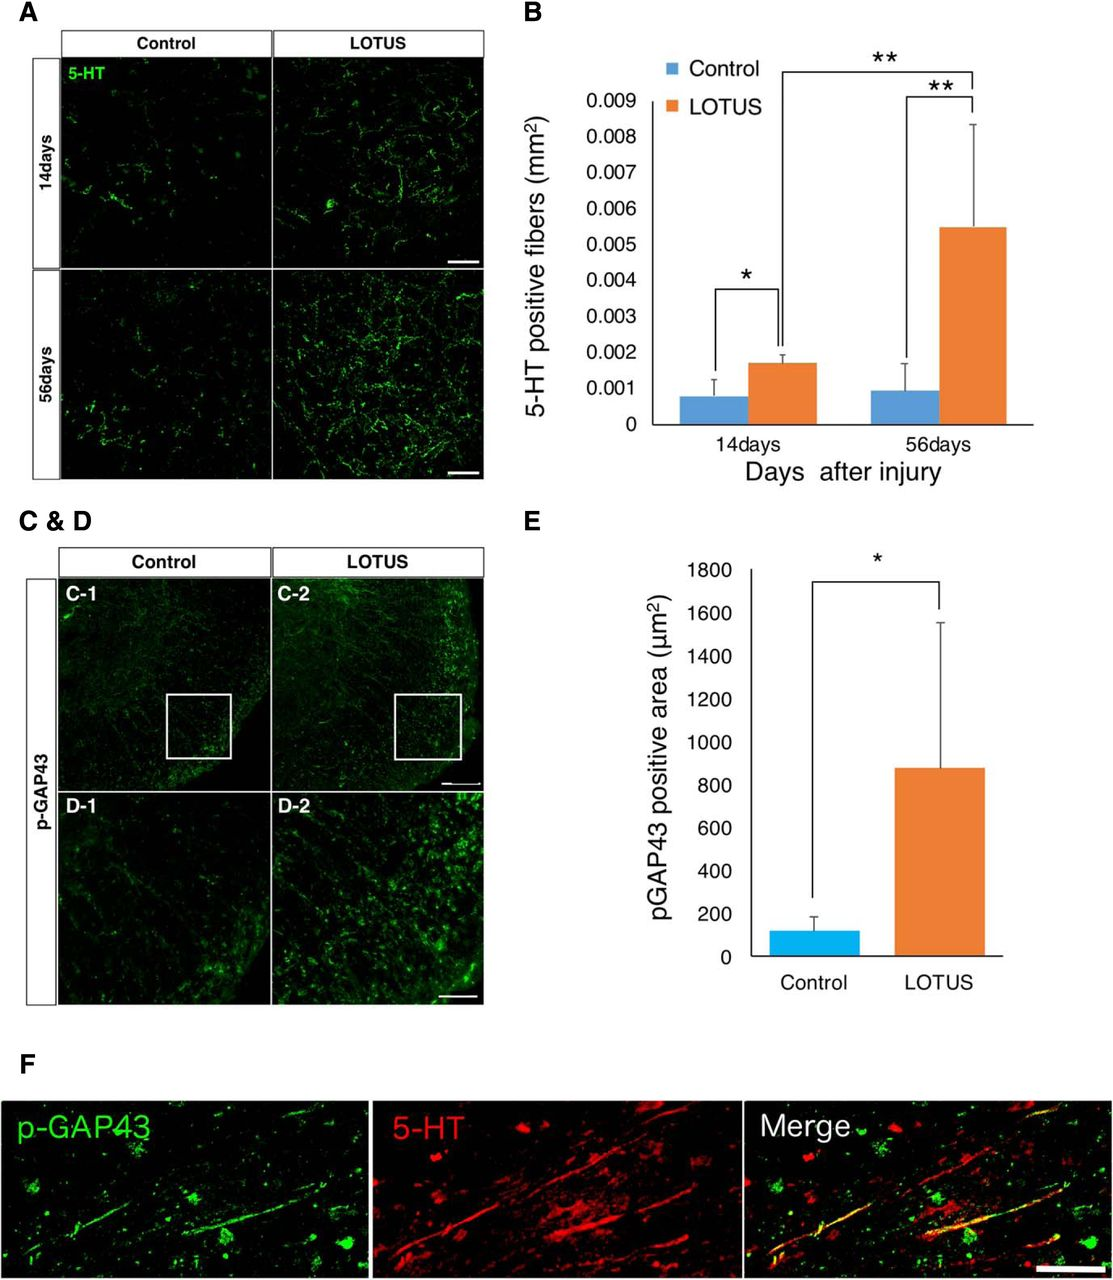 LOTUS Inhibits Neuronal Apoptosis and Promotes Tract